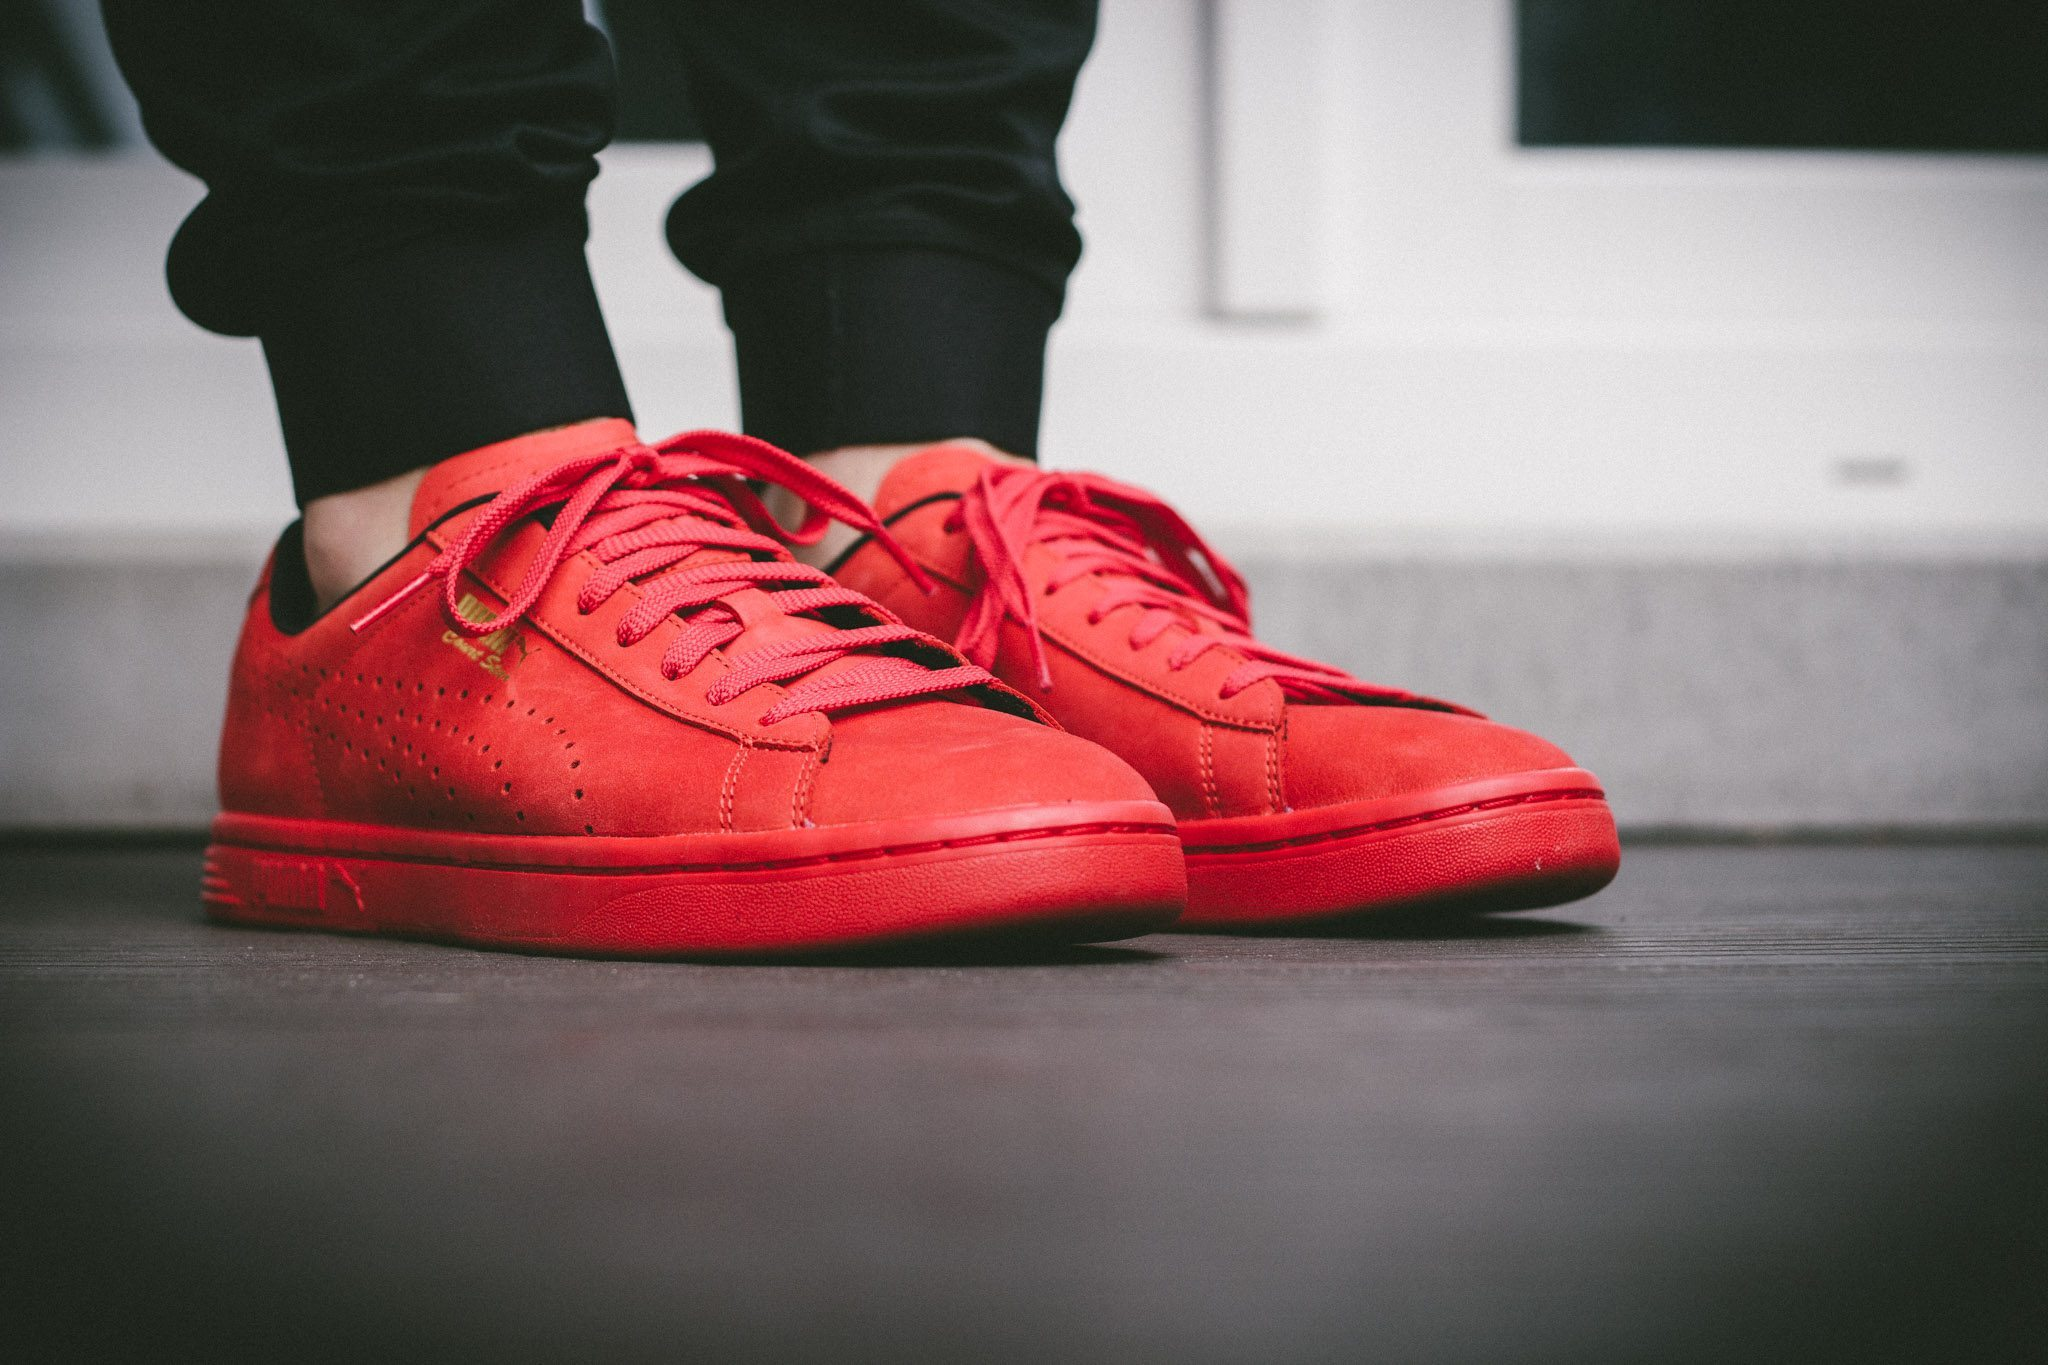 Puma Court Star OG High Risk All Red 3